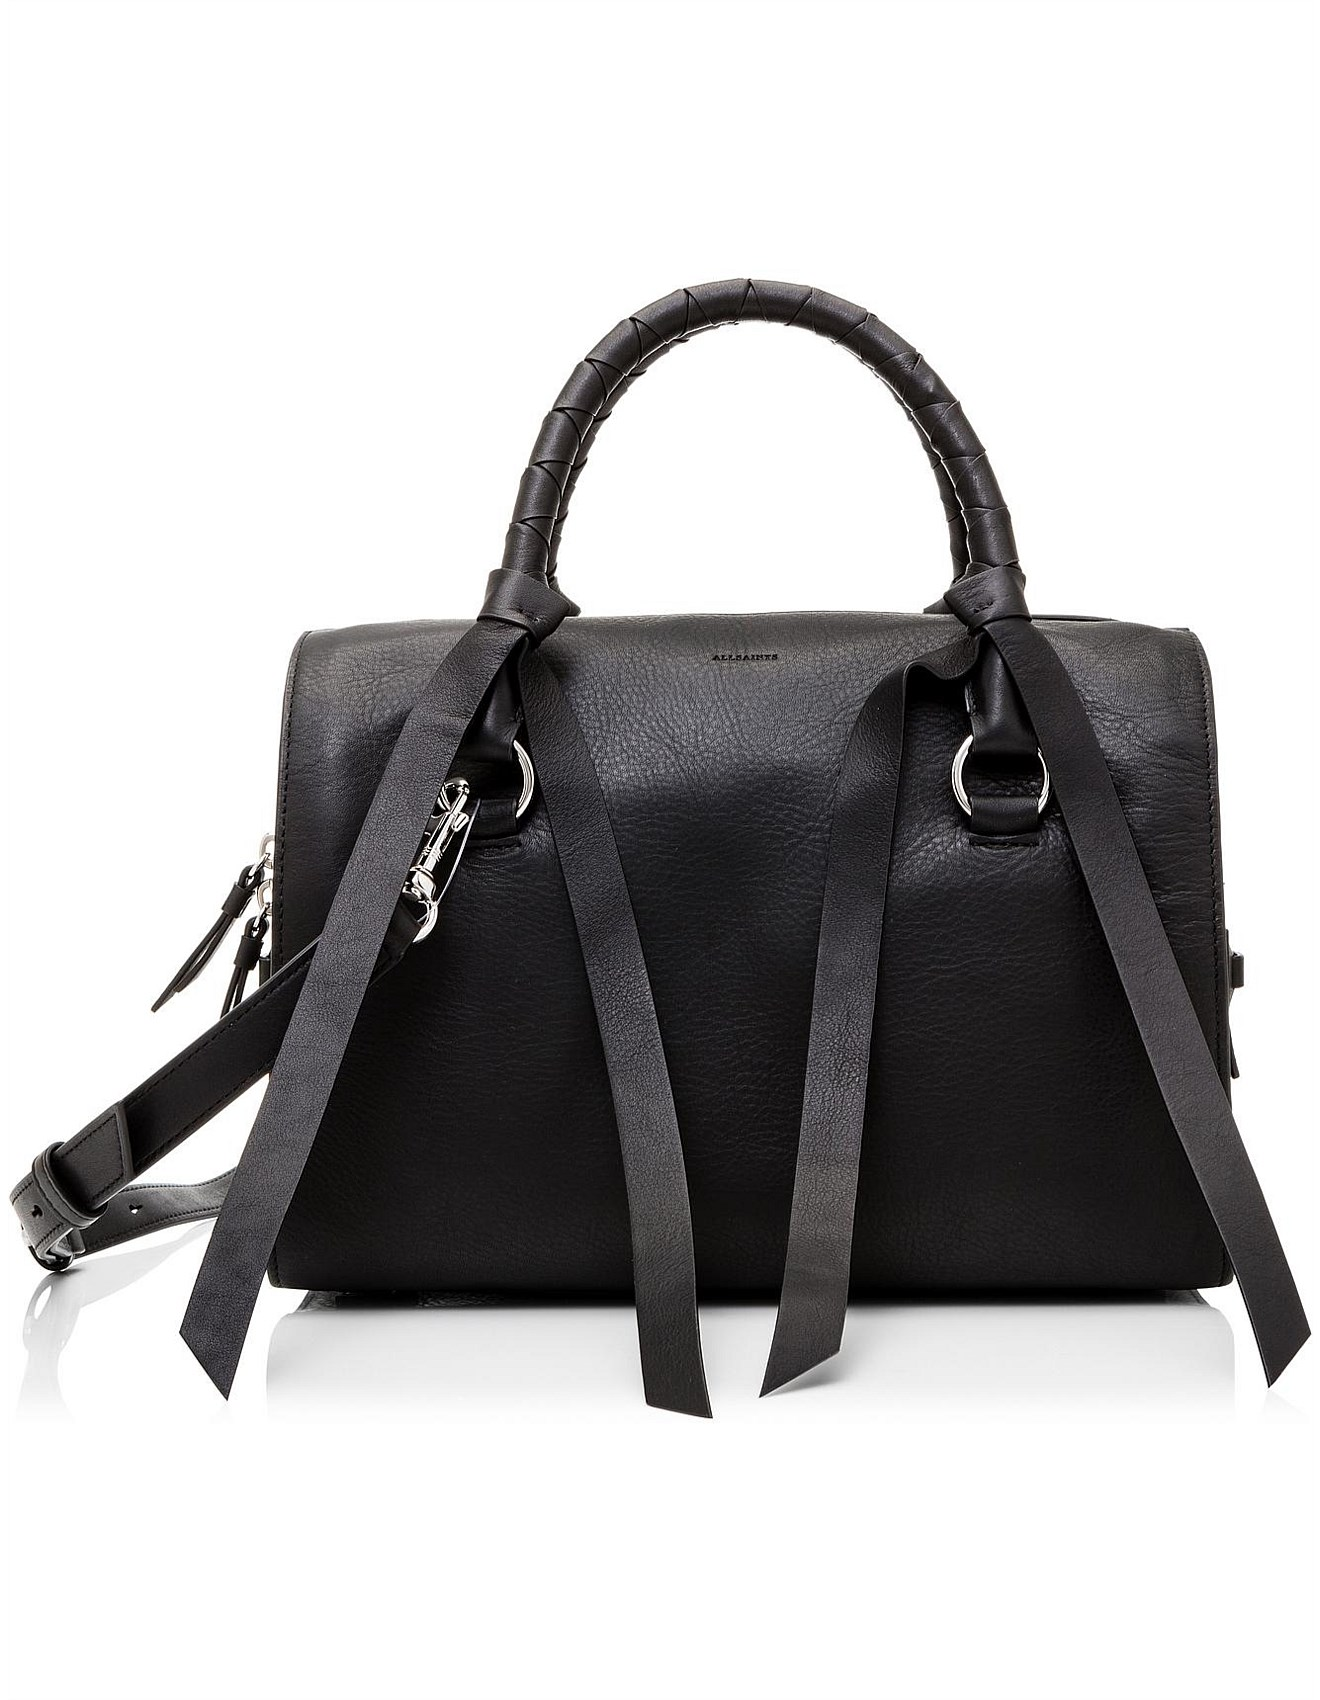 Voltaire Bowling Bag